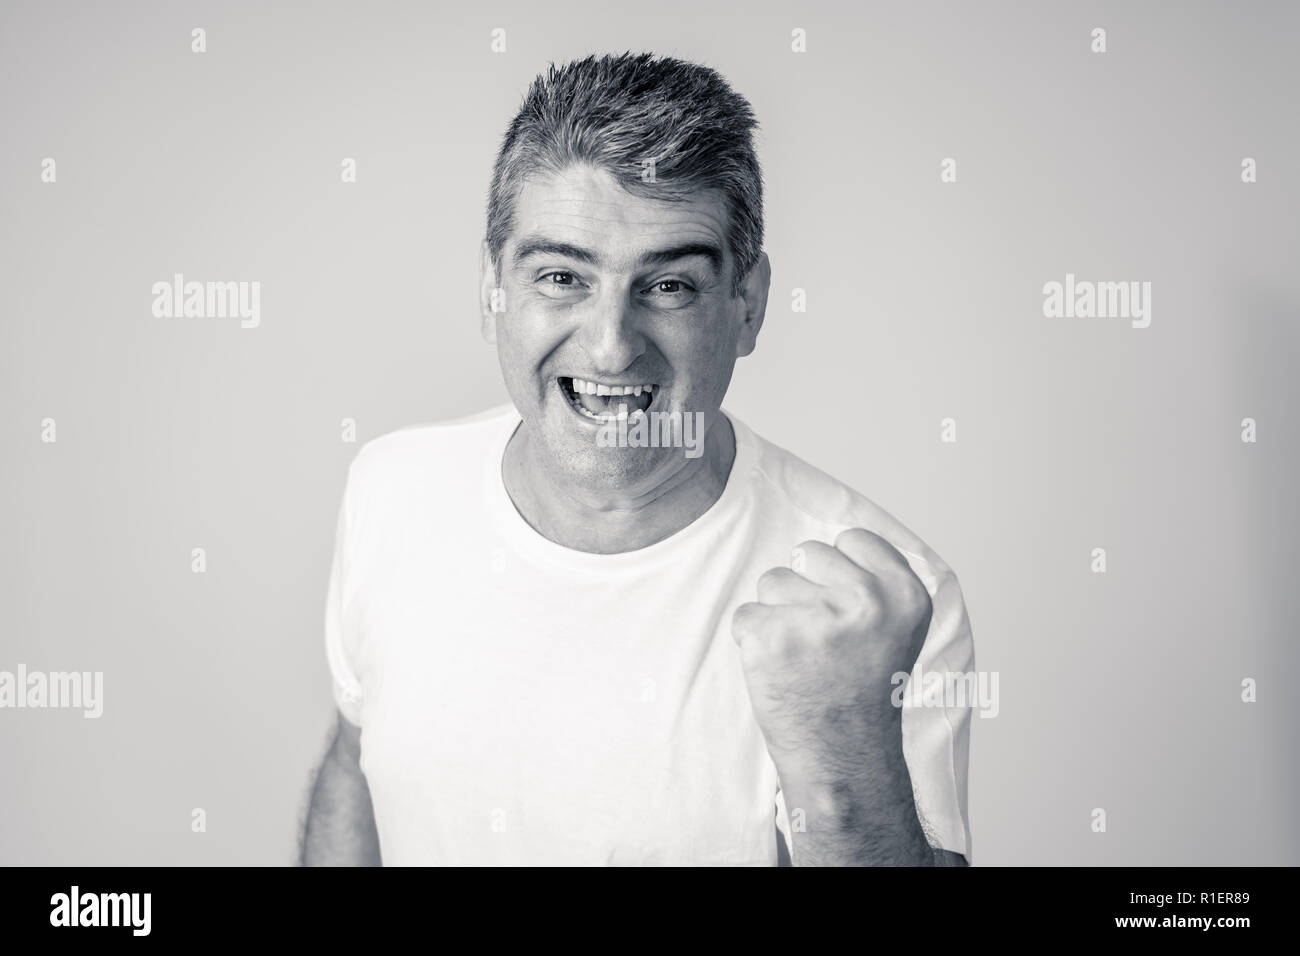 Man rejoices in achieving his goal, wining the lottery or having great success in face expression human emotions surprised and happy facial expression - Stock Image